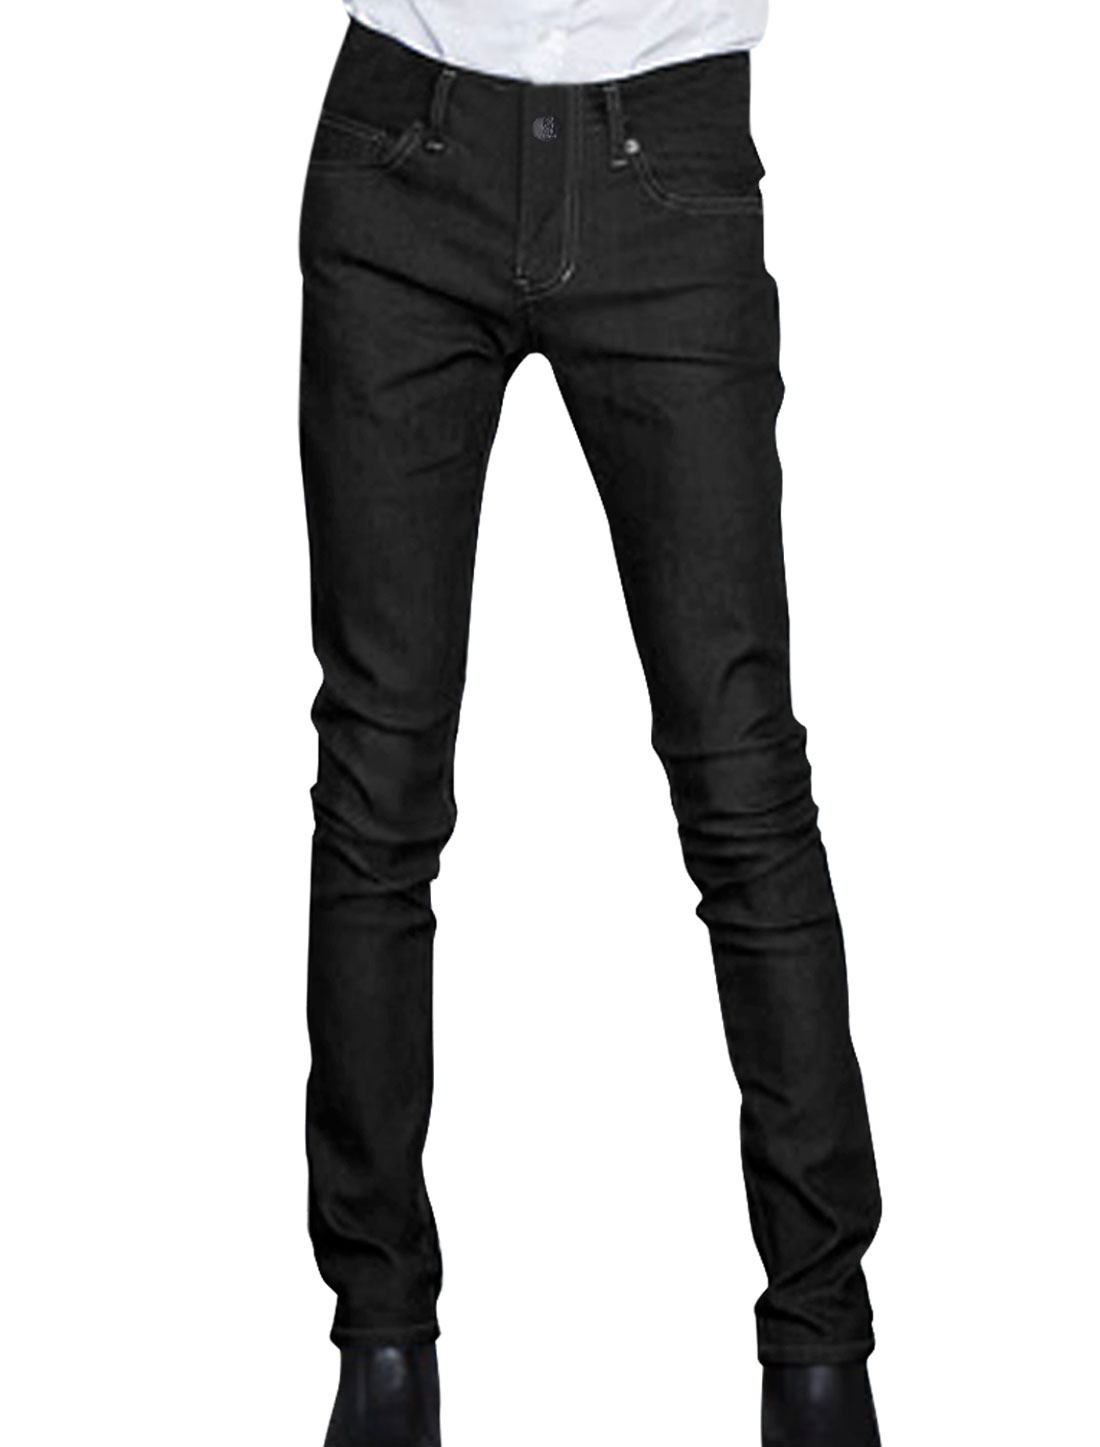 Man Chic 5 Pockets Design Black Straight Leg Casual Jeans W33